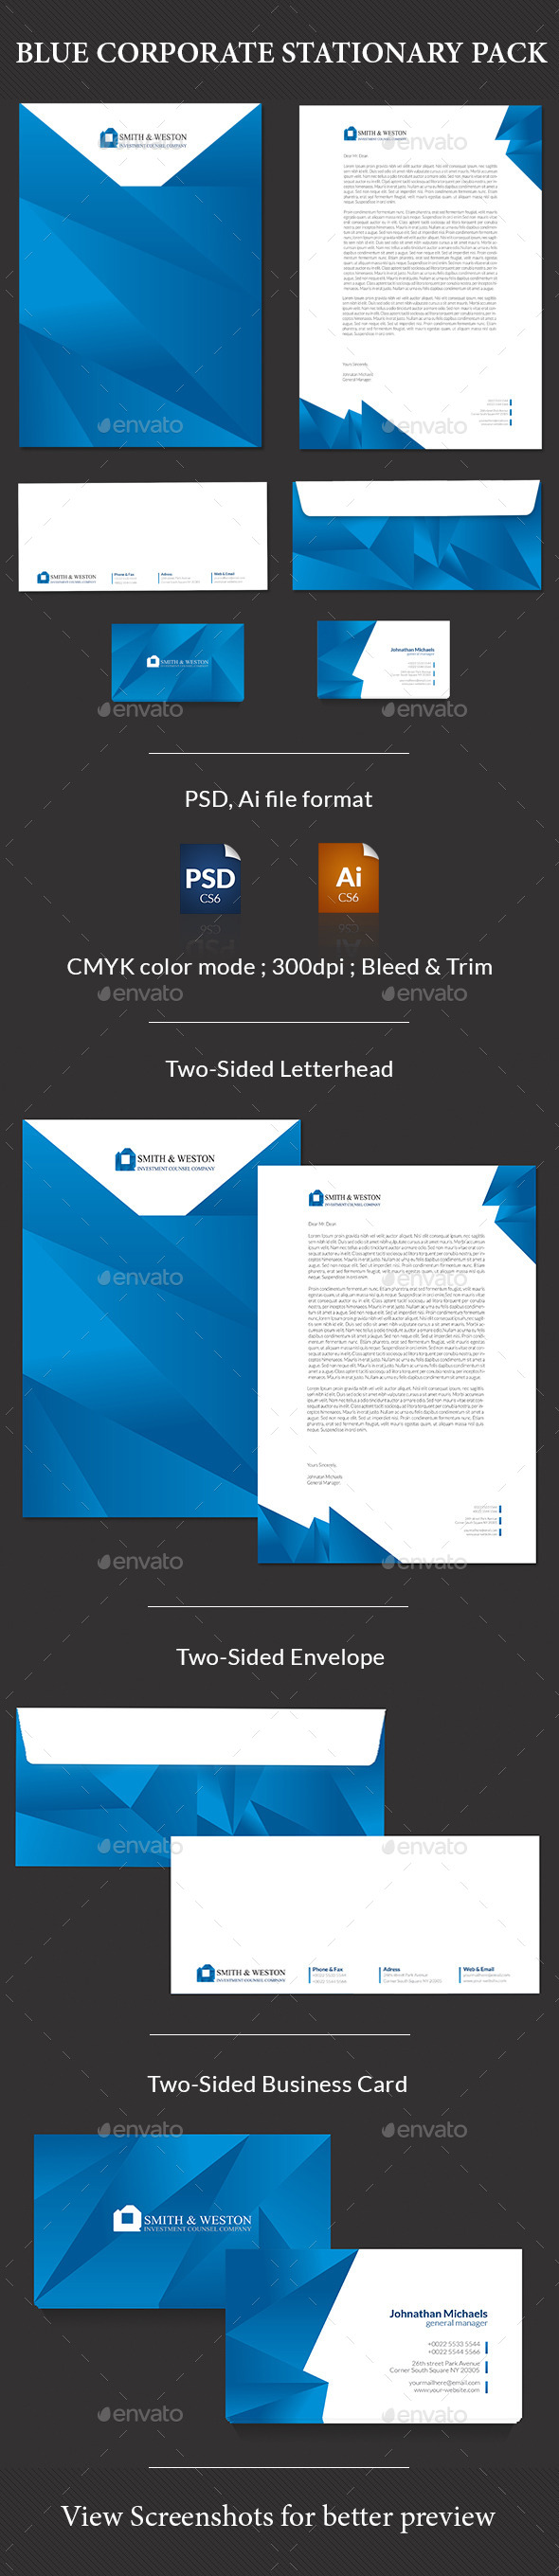 Blue Corporate Stationary Pack - Stationery Print Templates